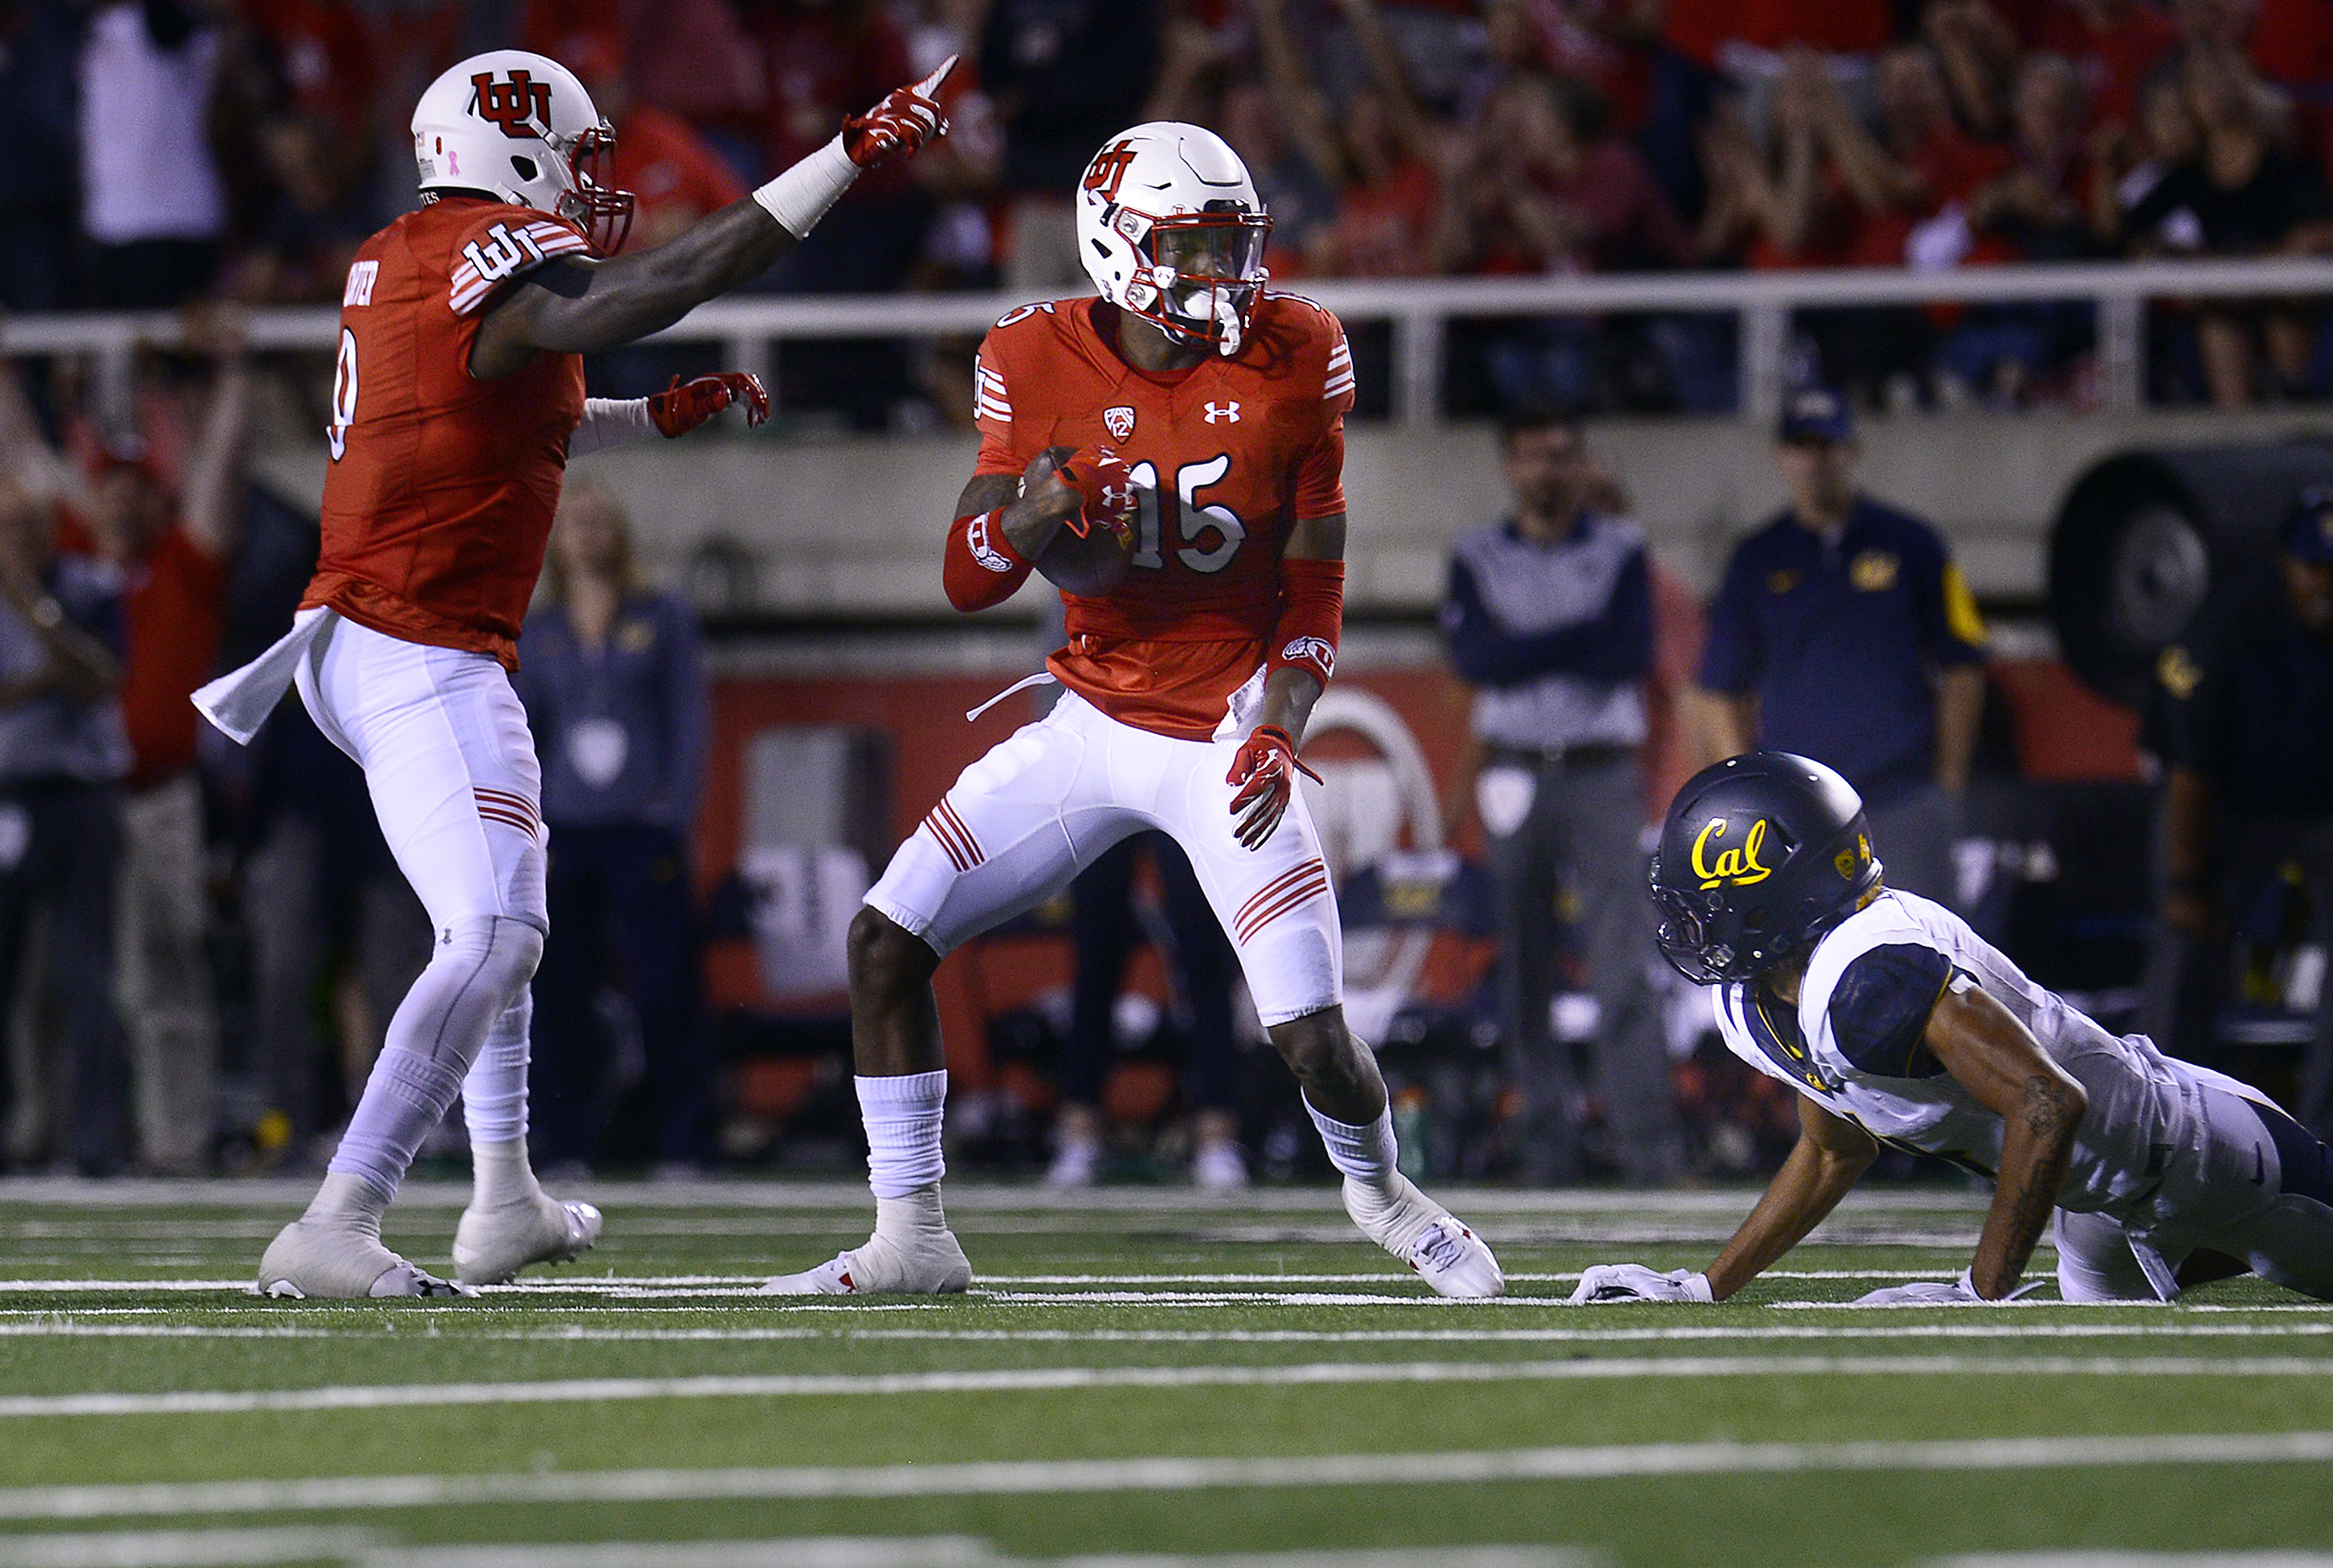 Utah's Dominique Hatfield grabs an interception away from California's Kenny Lawler in the first half during an NCAA college football game Saturday, Oct. 10, 2015, in Salt Lake City. (Scott Sommerdorf/The Salt Lake Tribune via AP) DESERET NEWS OUT; LOCAL